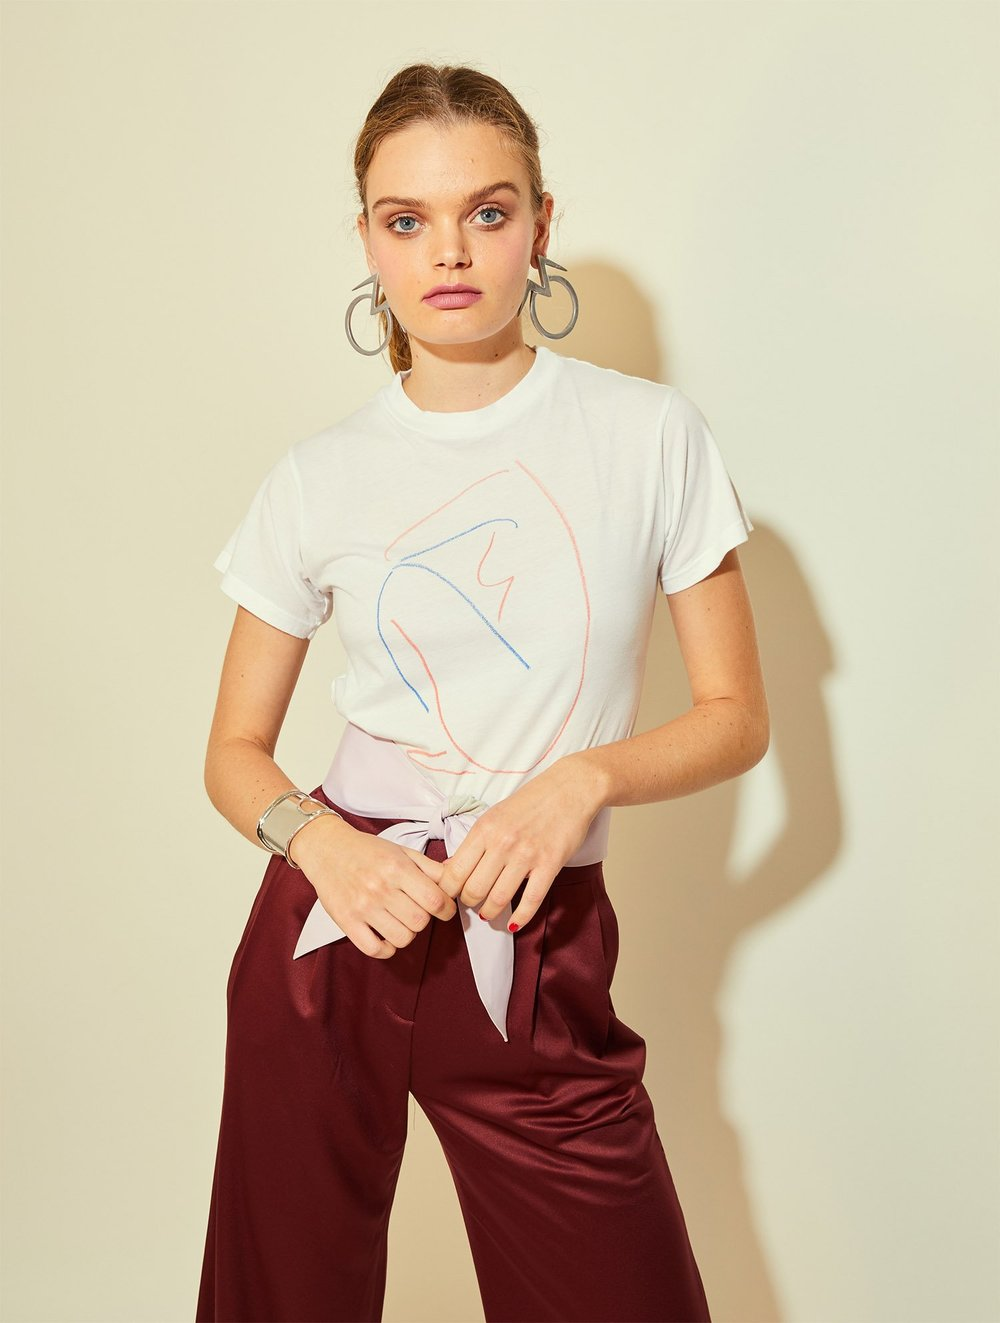 Monogram 'Silhouette' Tee with art by Alexa Coe,  $65